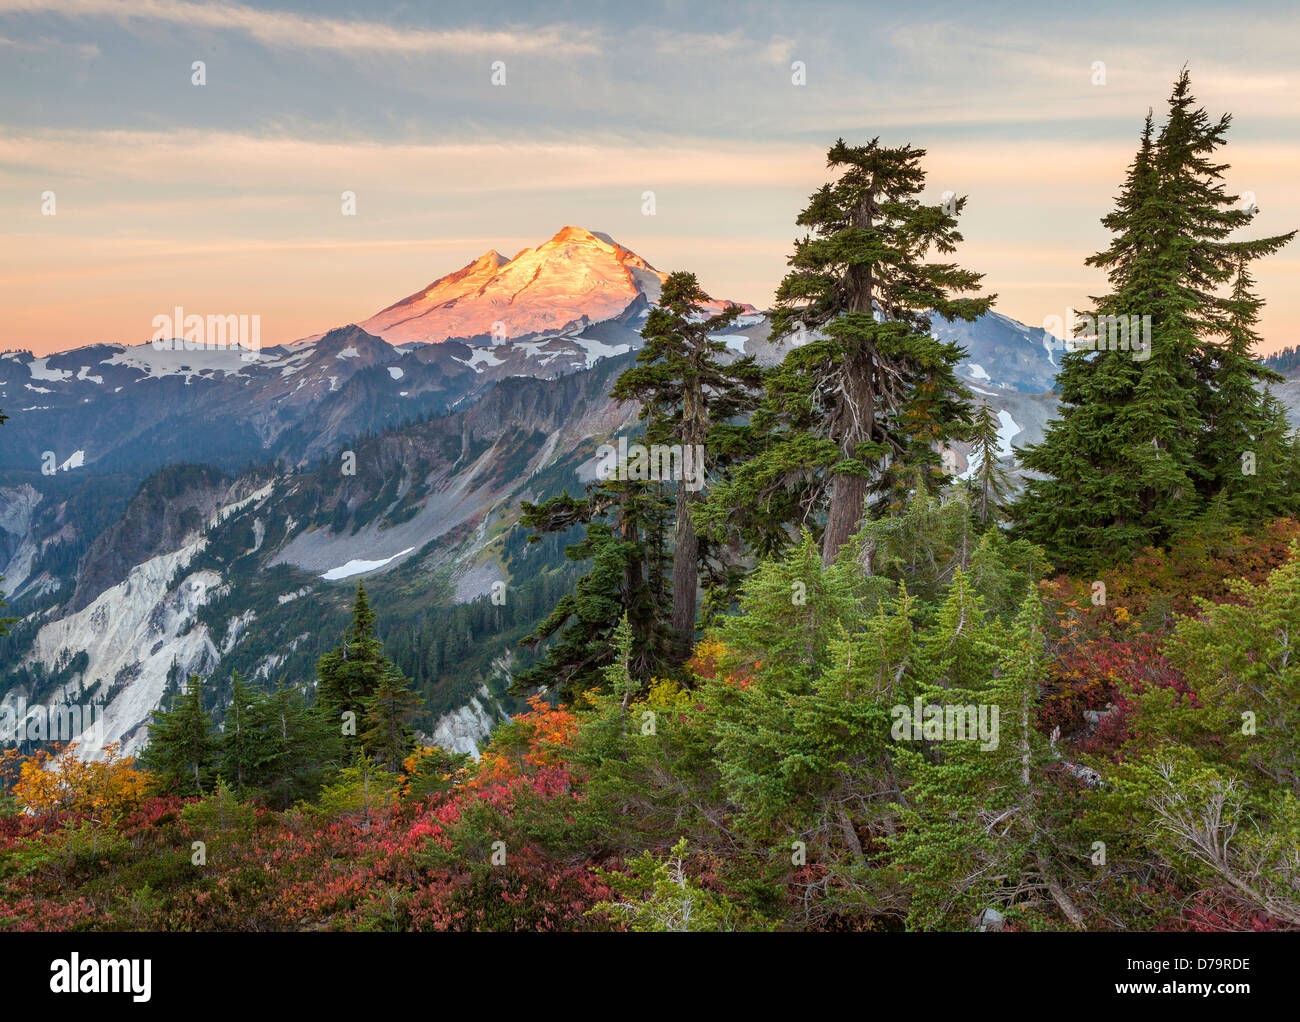 Mont Baker-Snoqualmie National Forest, WA : Mount Baker d'artistes Ridge Trail, au lever du soleil Photo Stock